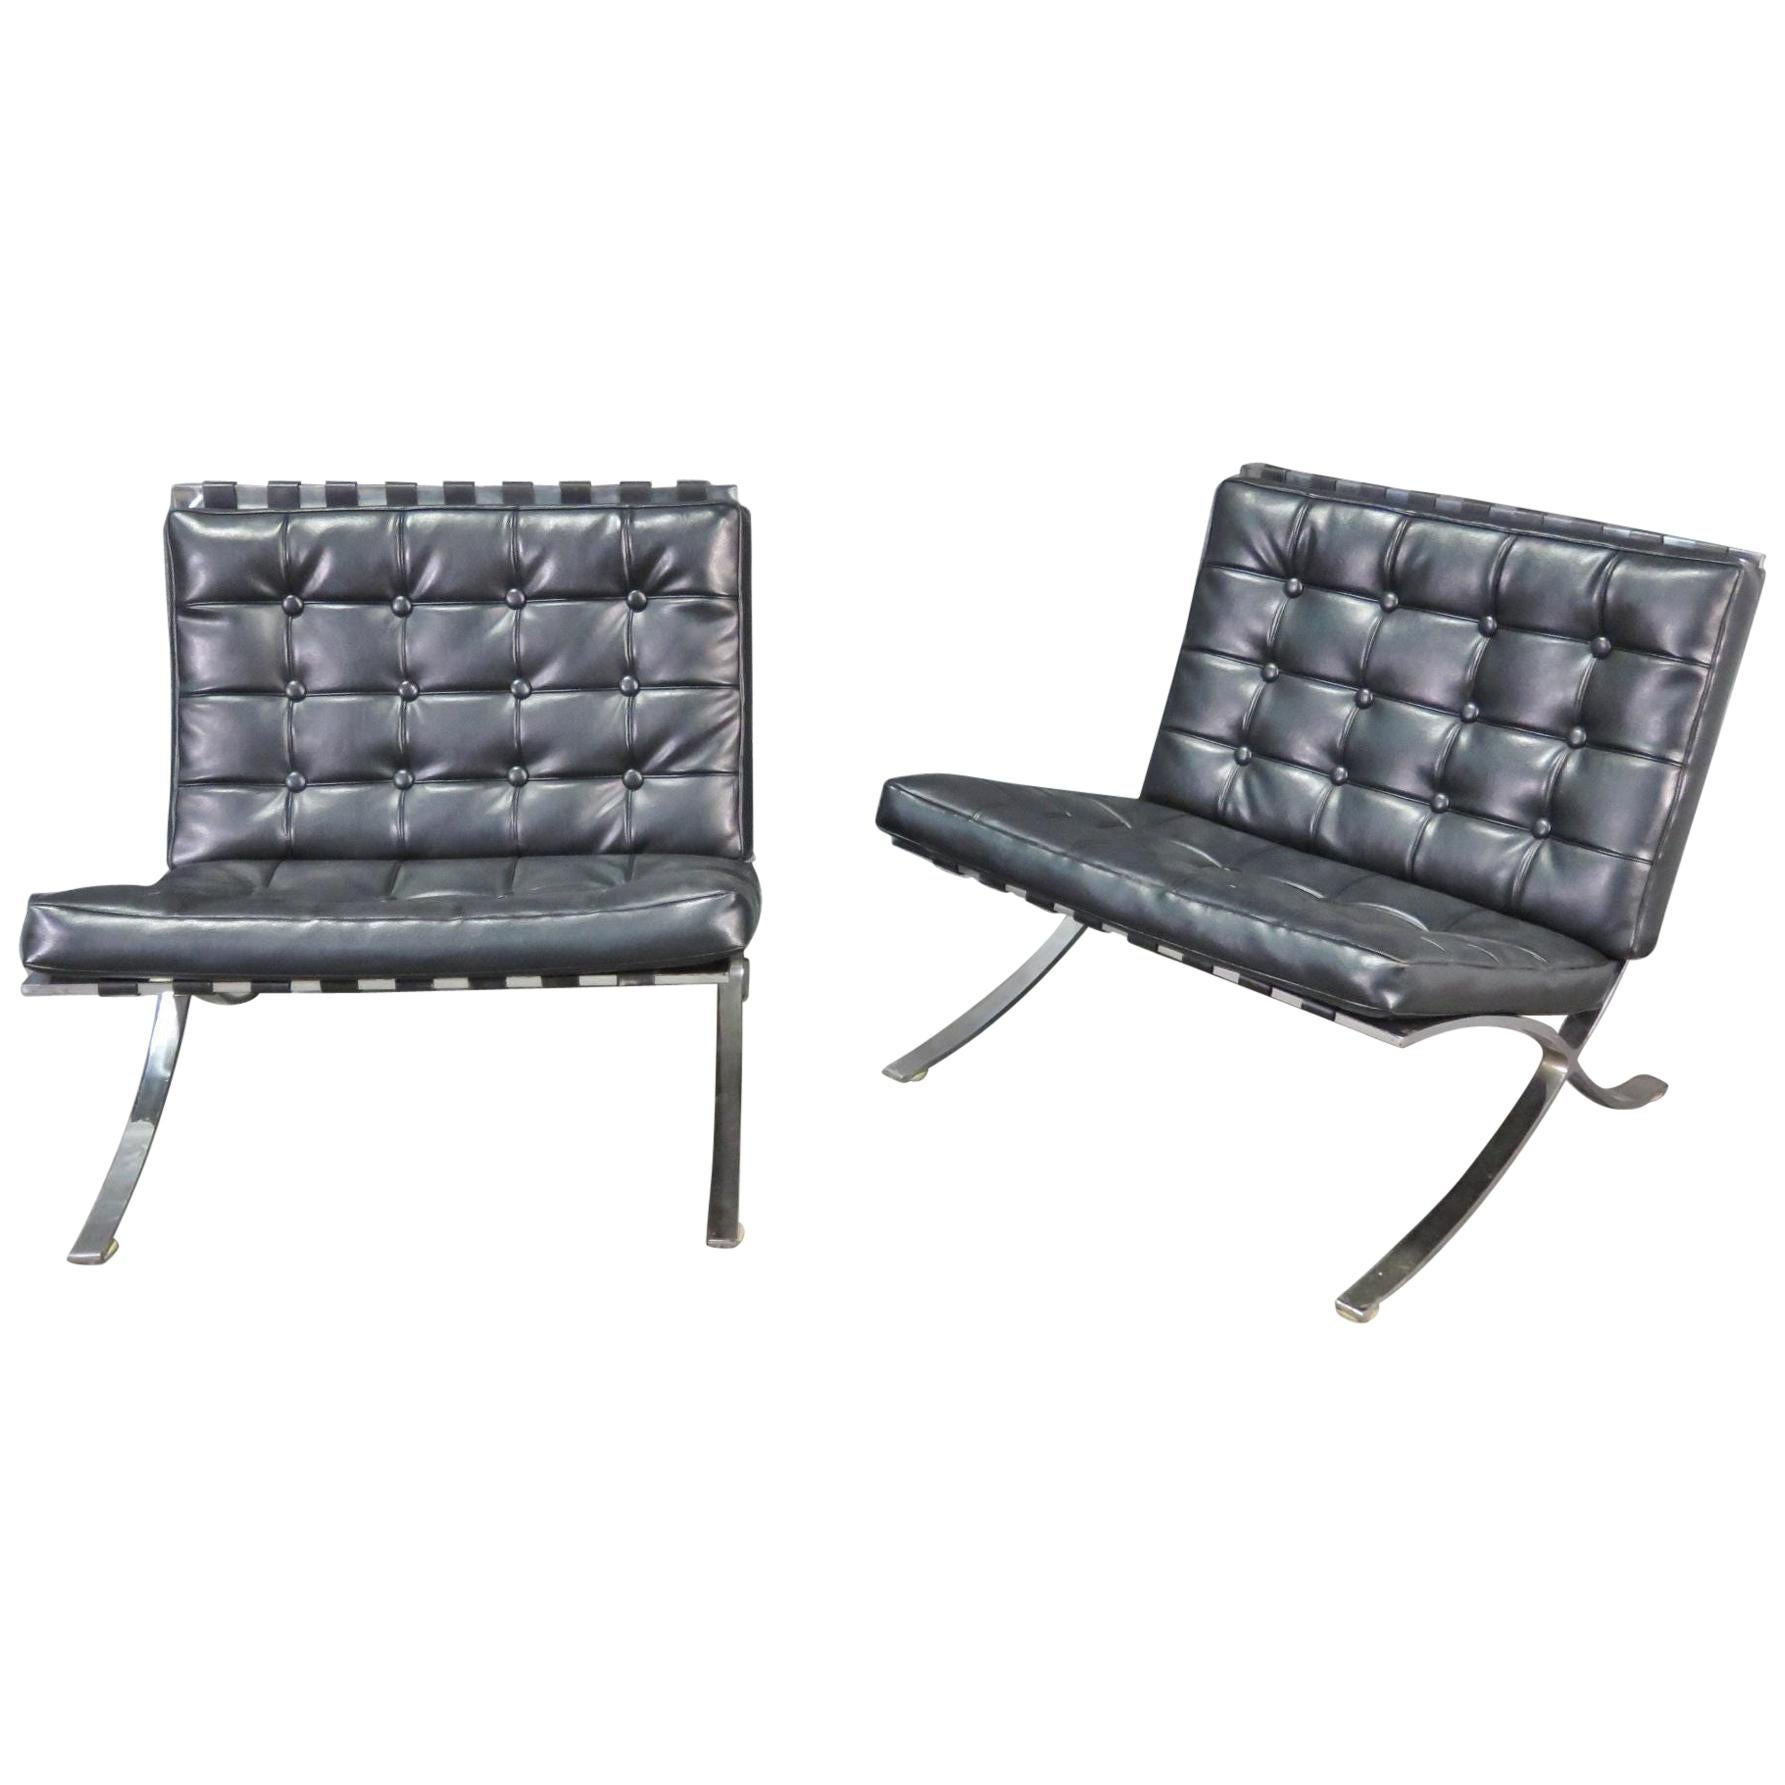 Pair of Vintage Barcelona Style Chairs